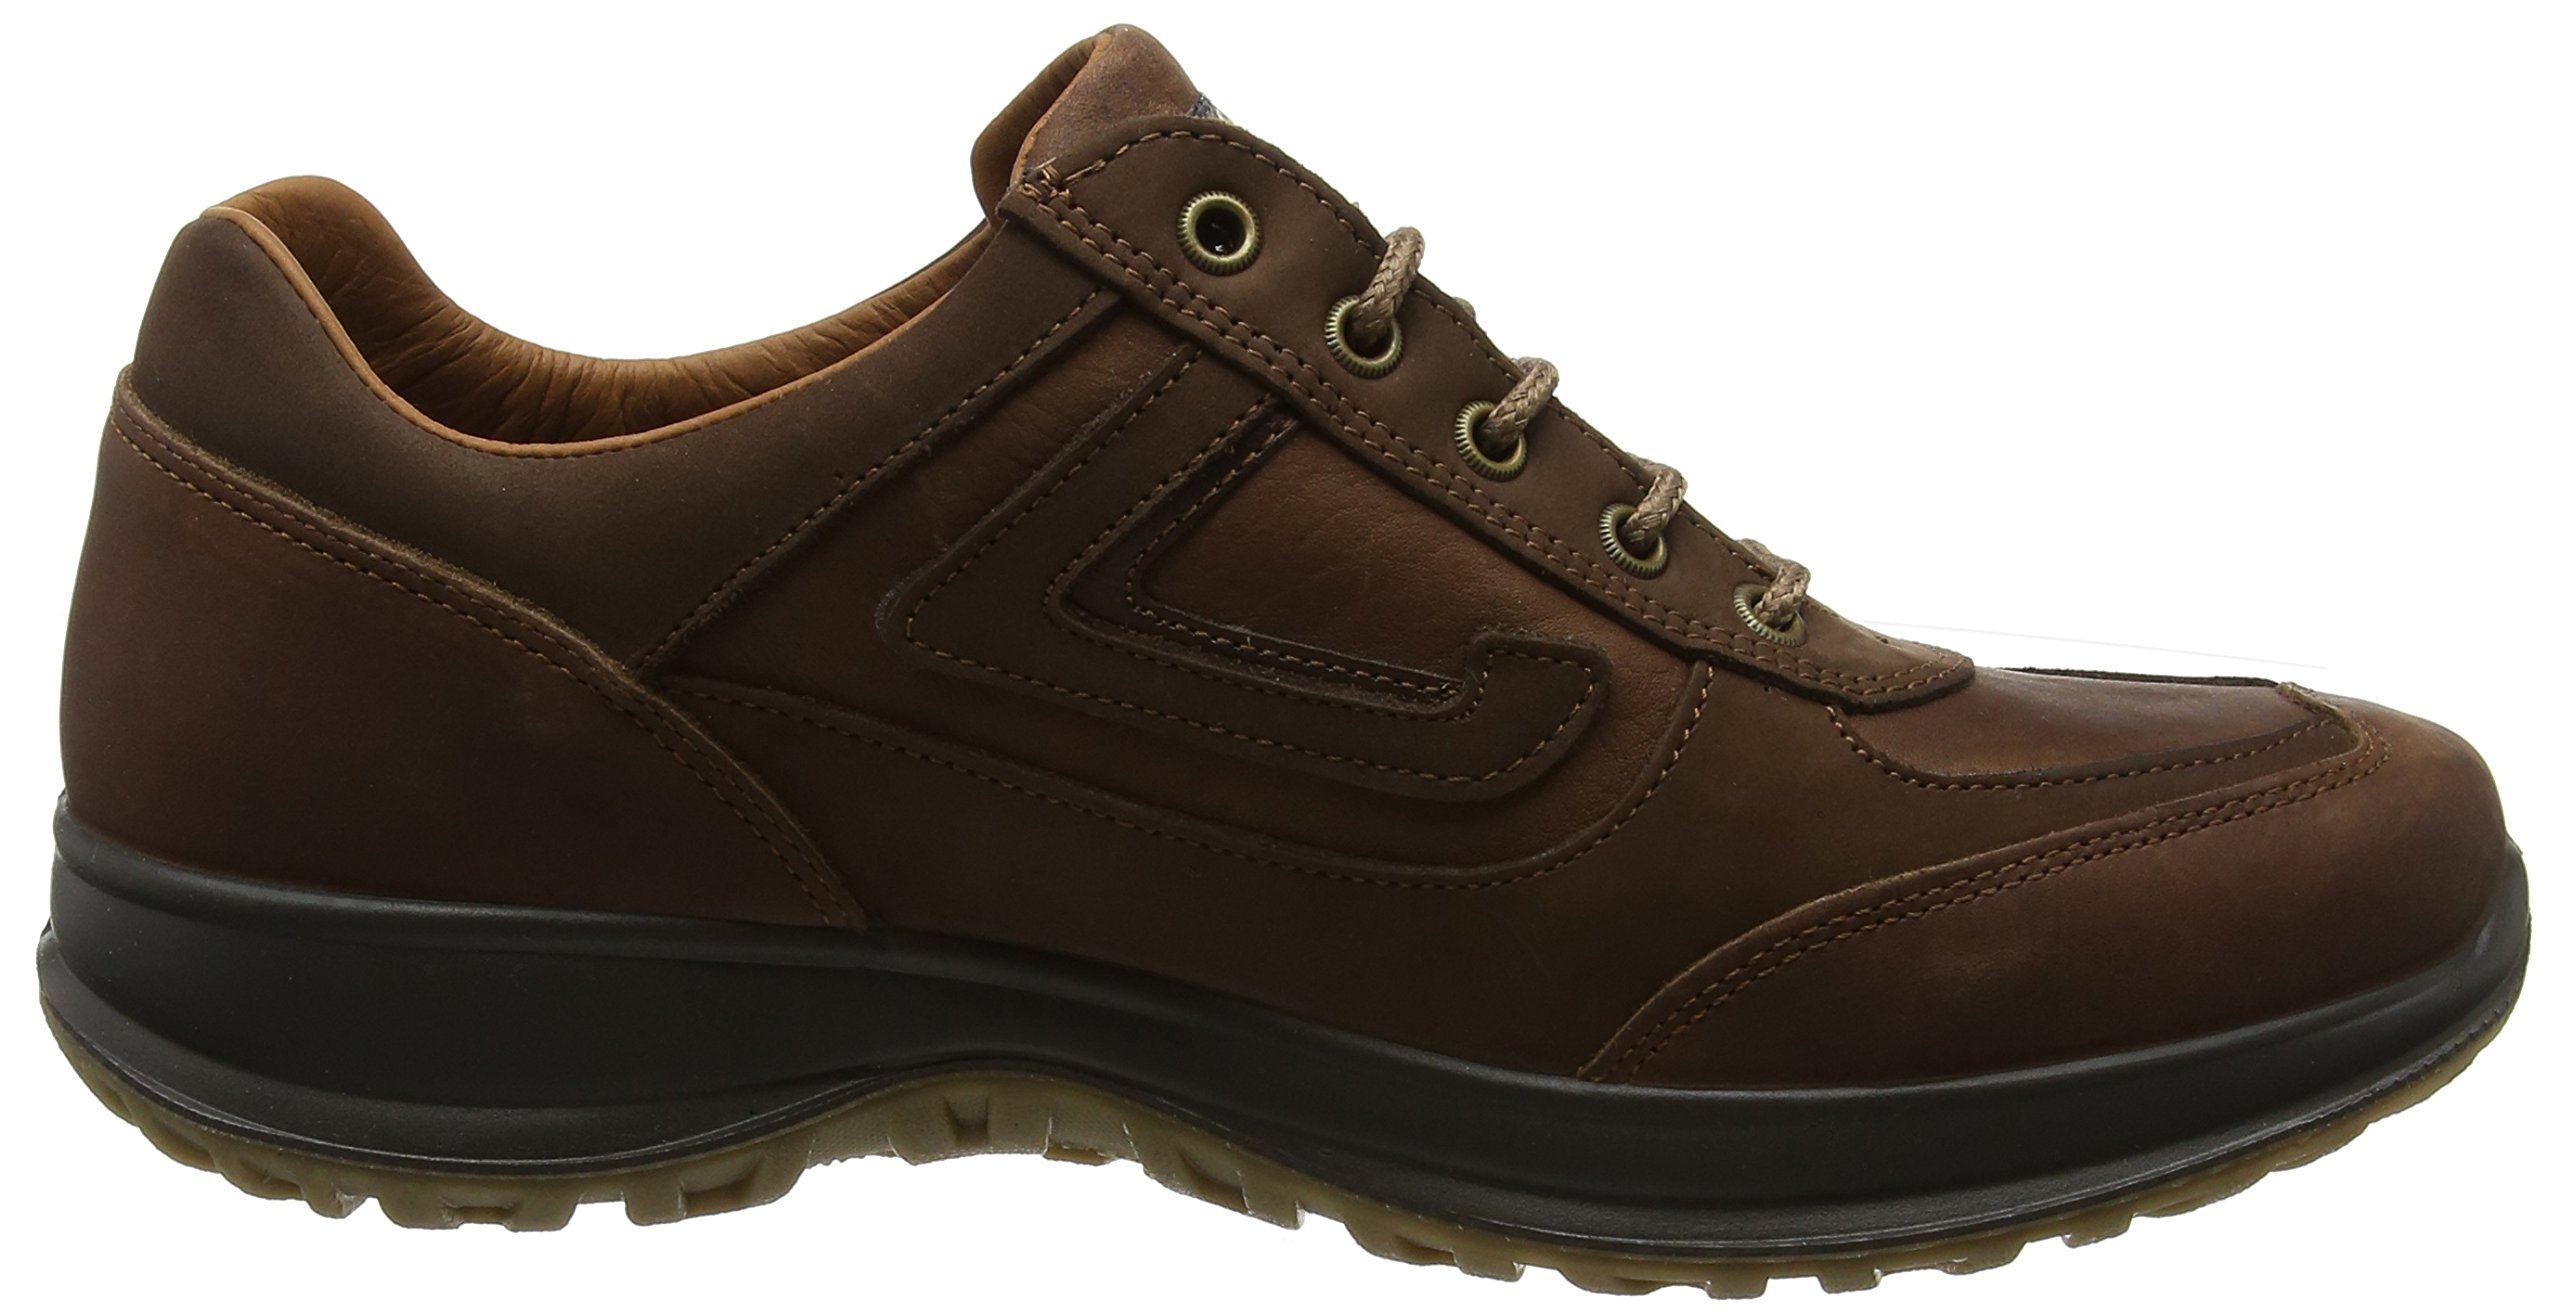 Grisport Men's Airwalker Walking Shoes 6